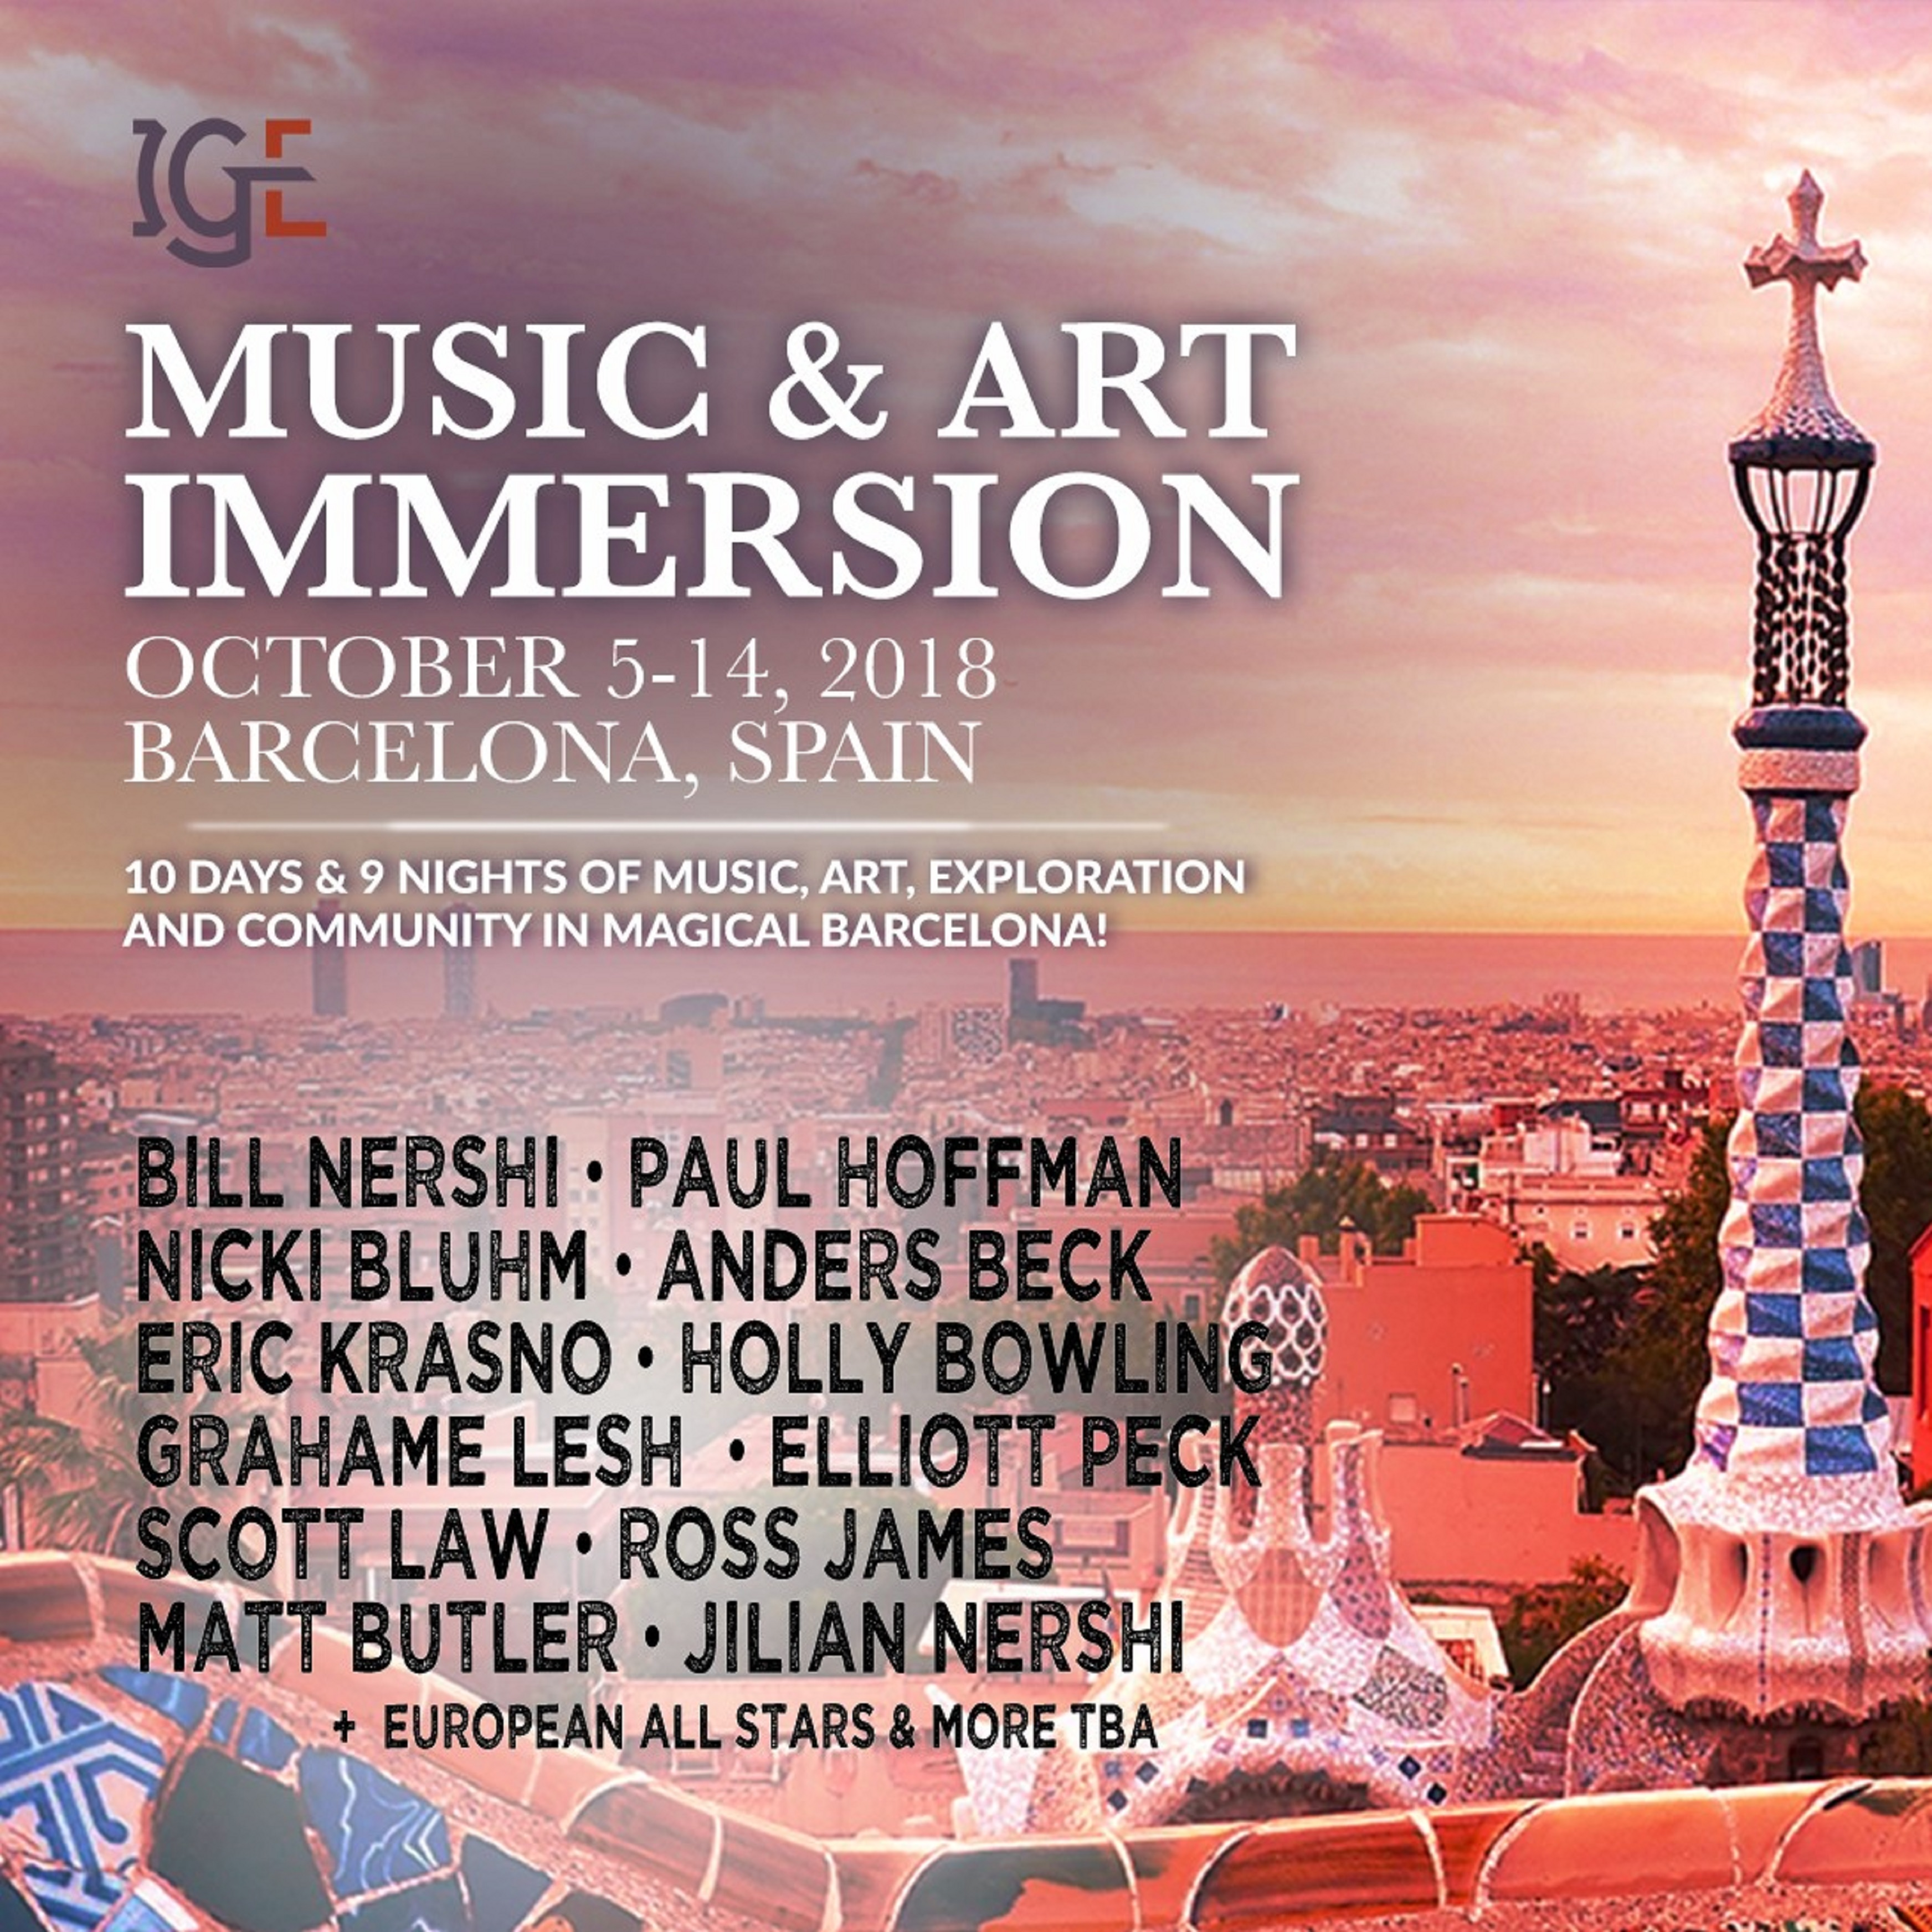 IGE Music & Art Immersion Engages Barcelona for Location of Fourth Annual Summit